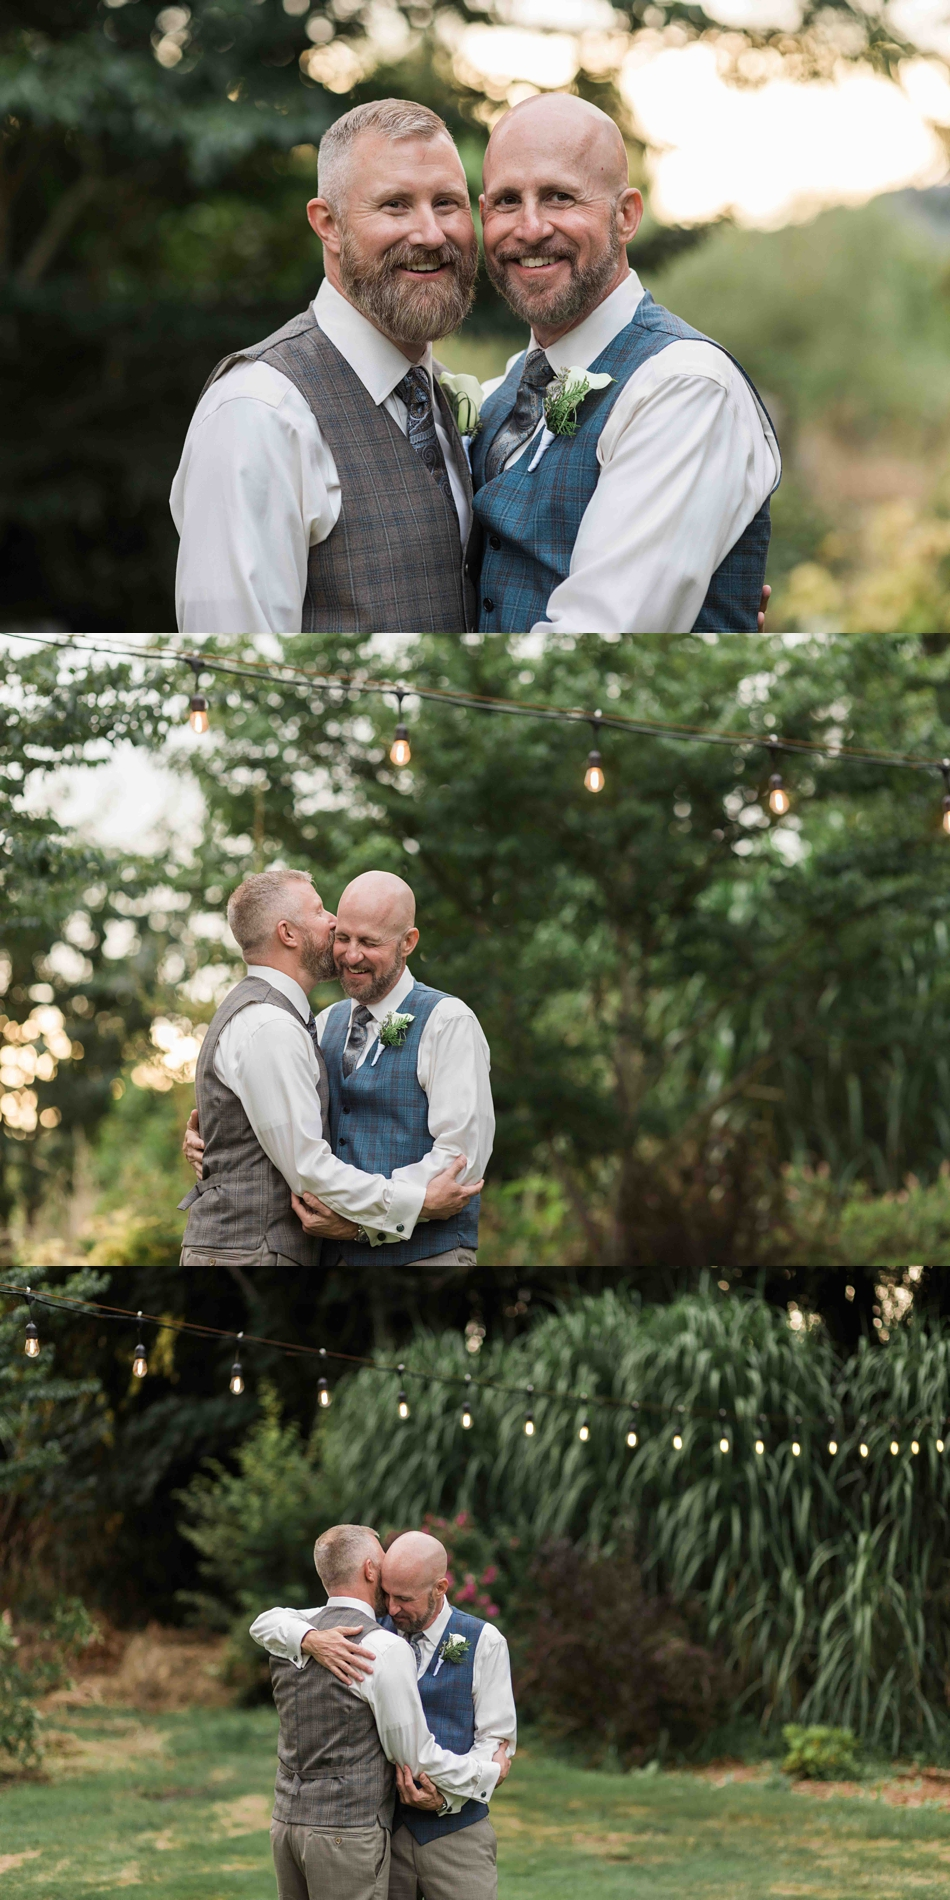 A wedding in the woods at Falling Water Gardens in Monroe. Photos by Joanna Monger Photography, Snohomish and Seattle Wedding Photographer.